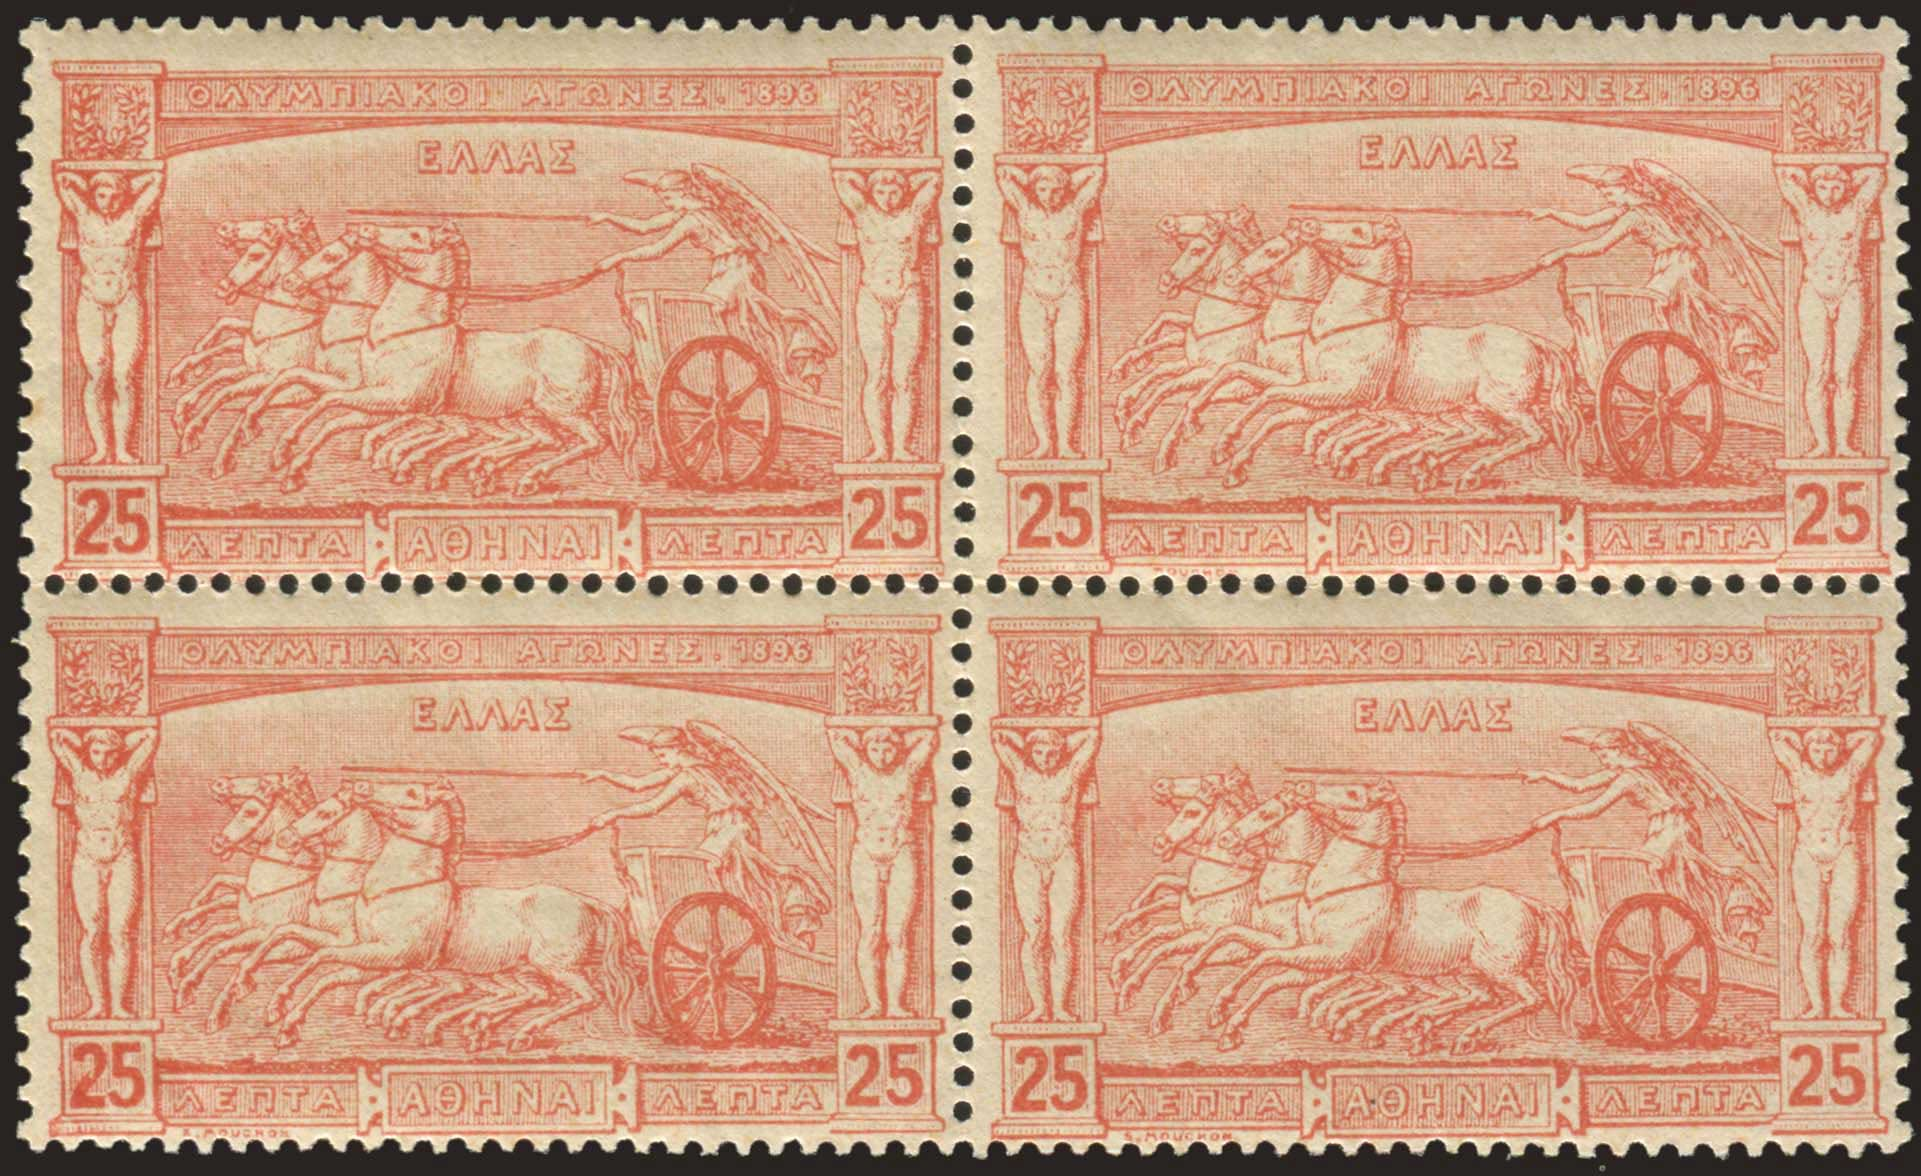 Lot 402 - -  1896 FIRST OLYMPIC GAMES 1896 first olympic games -  A. Karamitsos Postal & Live Internet Auction 681 General Philatelic Auction